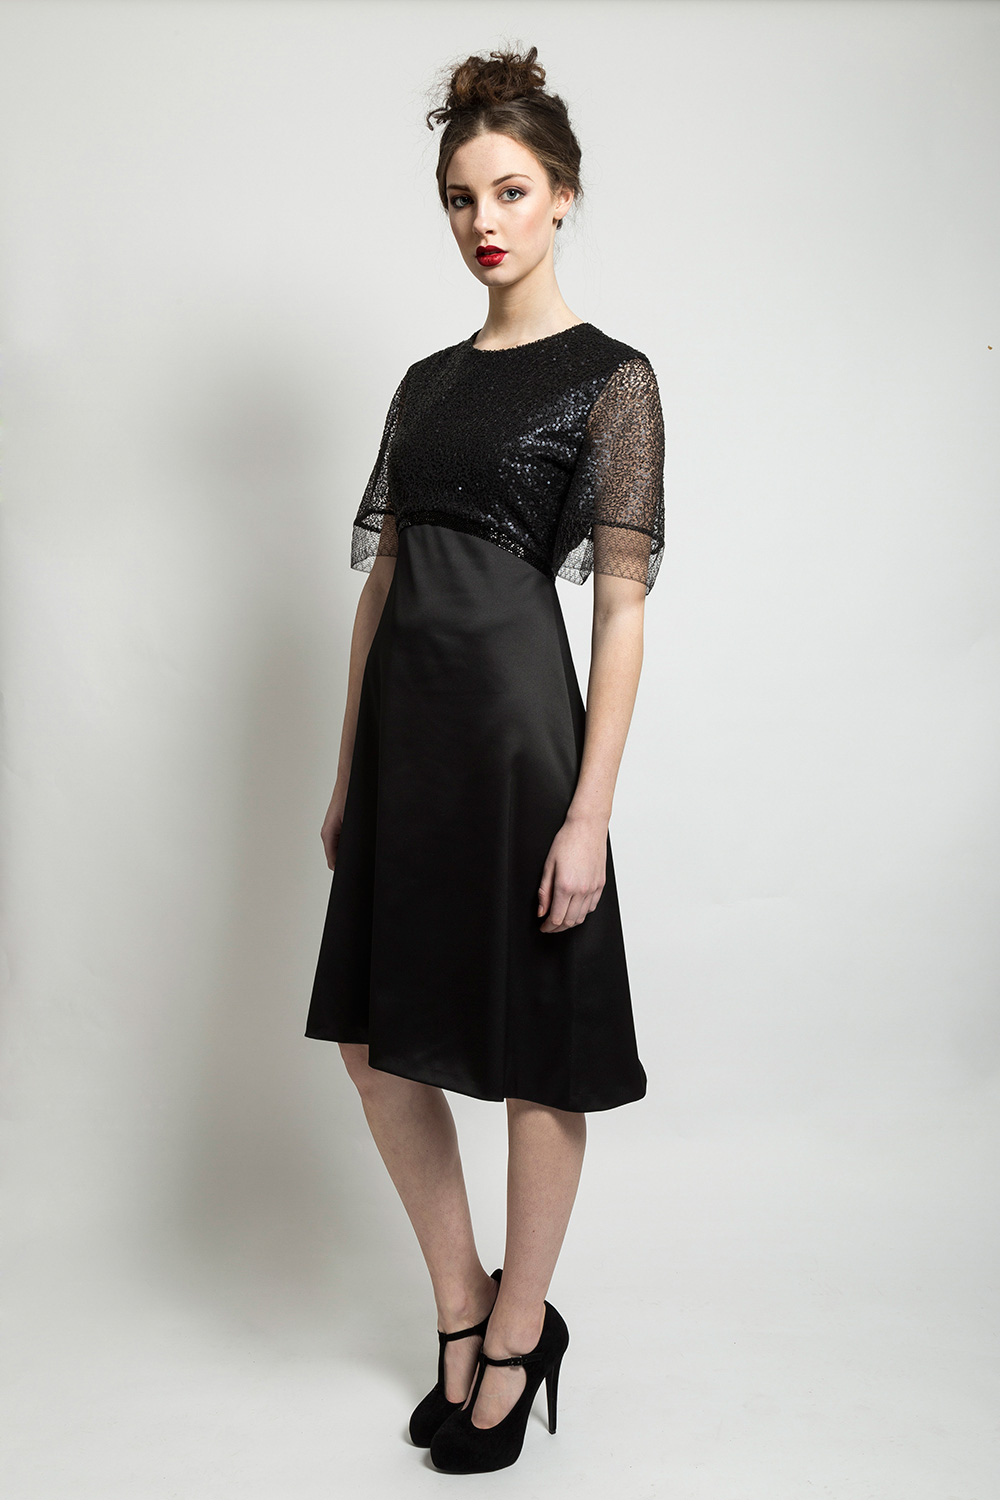 AW14-Couture-Black-Sequin-Dress.jpg